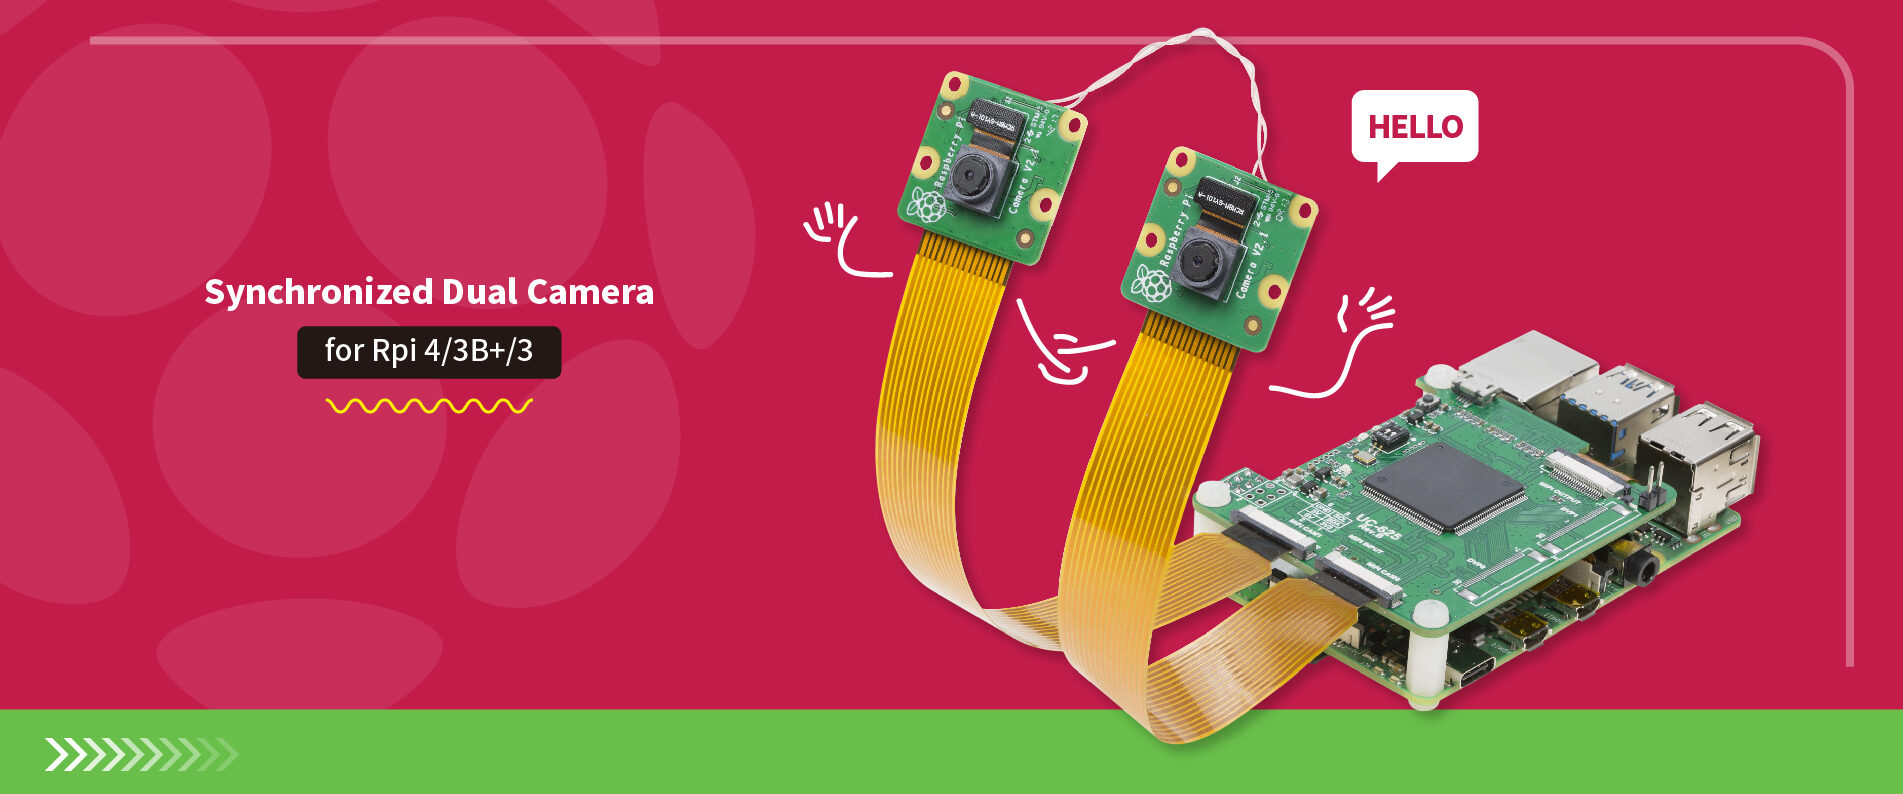 arducam-dual-sync-cam-stereo-pi-banner